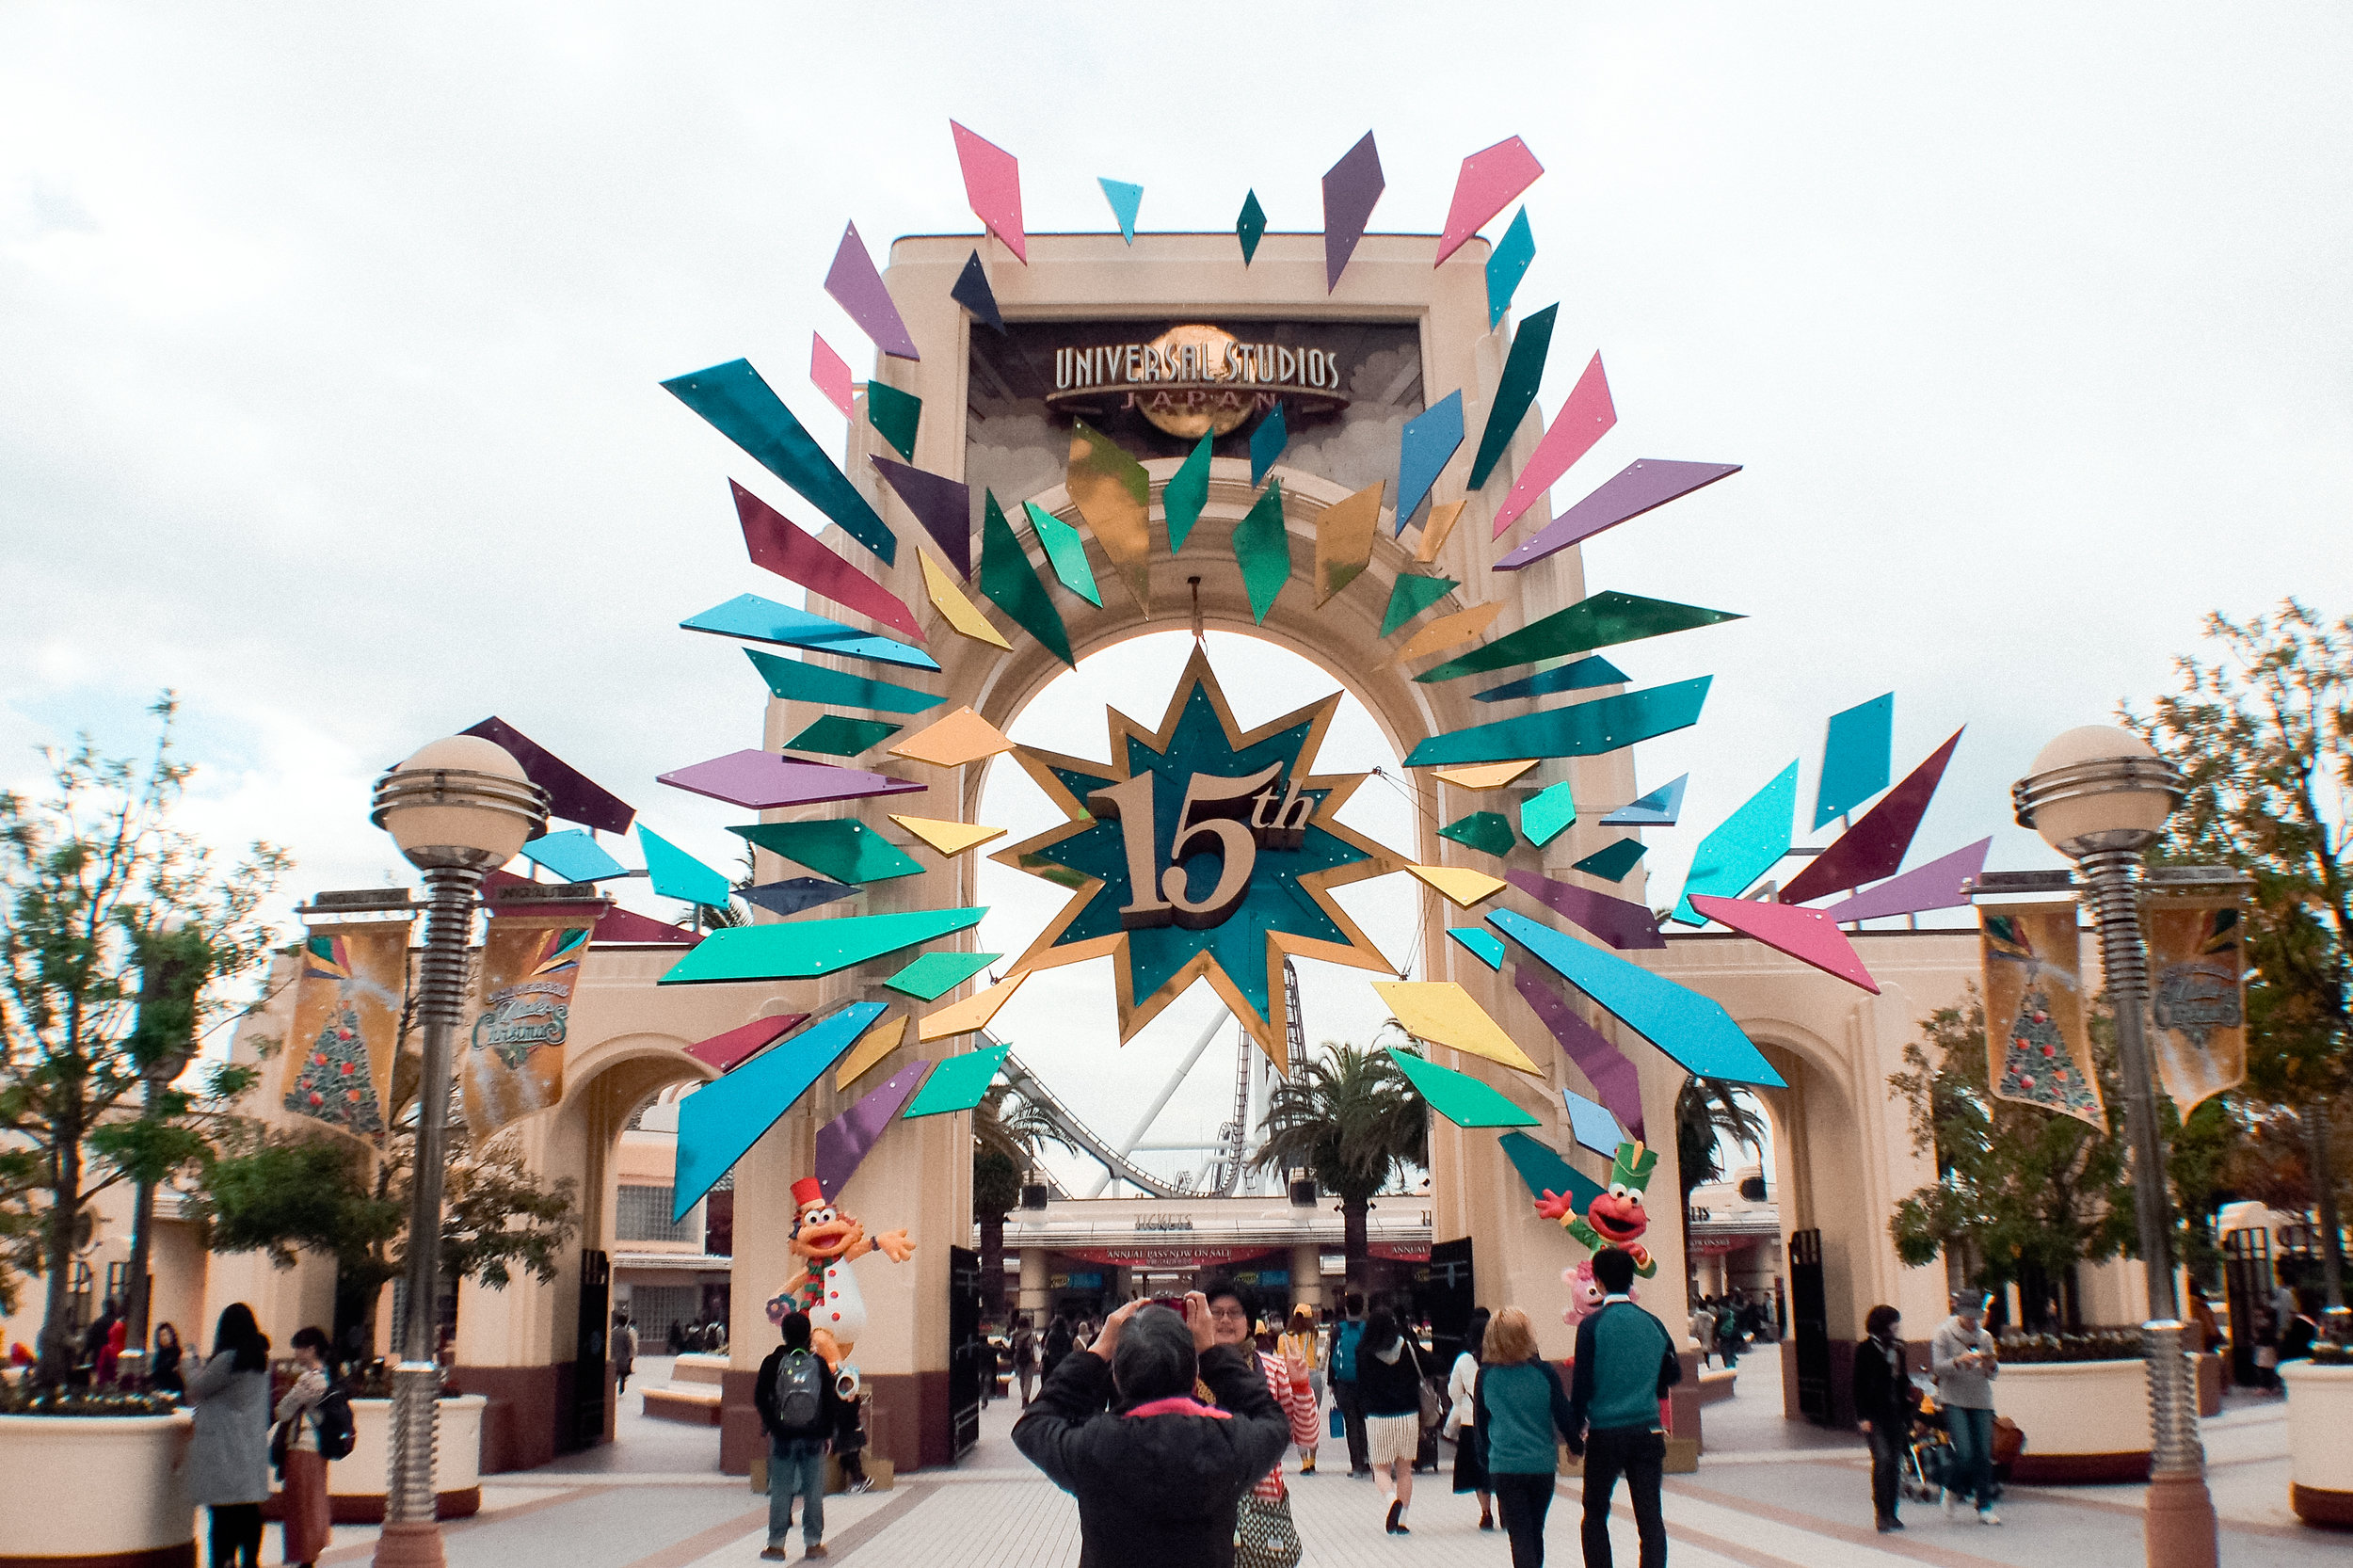 The entrance of the theme park. There were special decorations when we visited as they were celebrating their 15th anniversary.